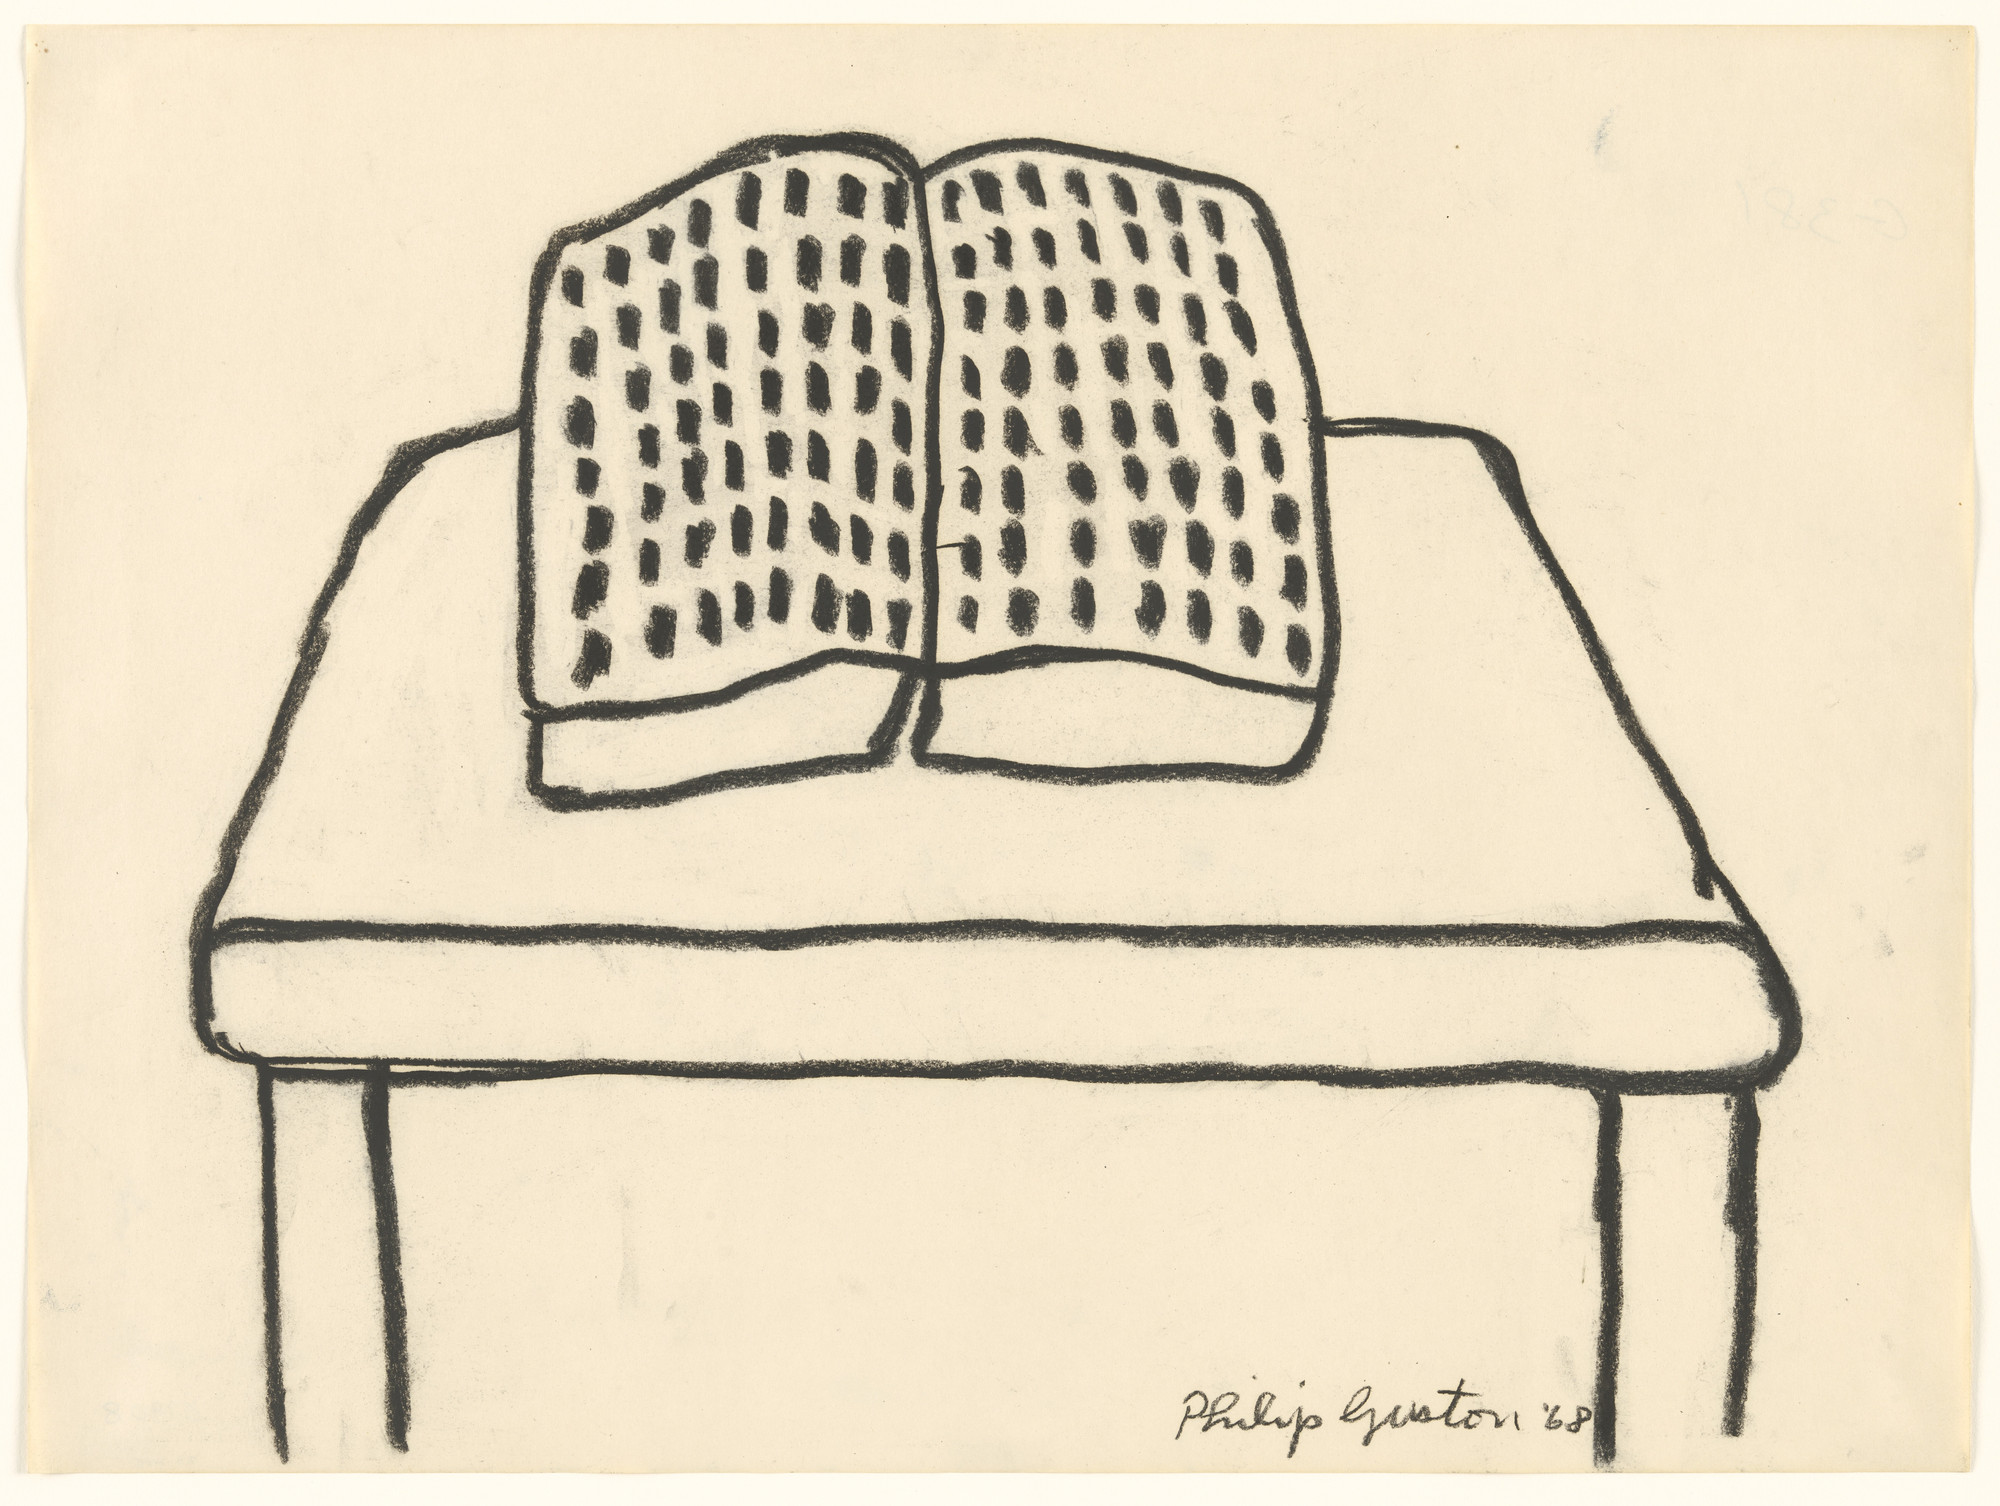 Philip Guston. Book. 1968